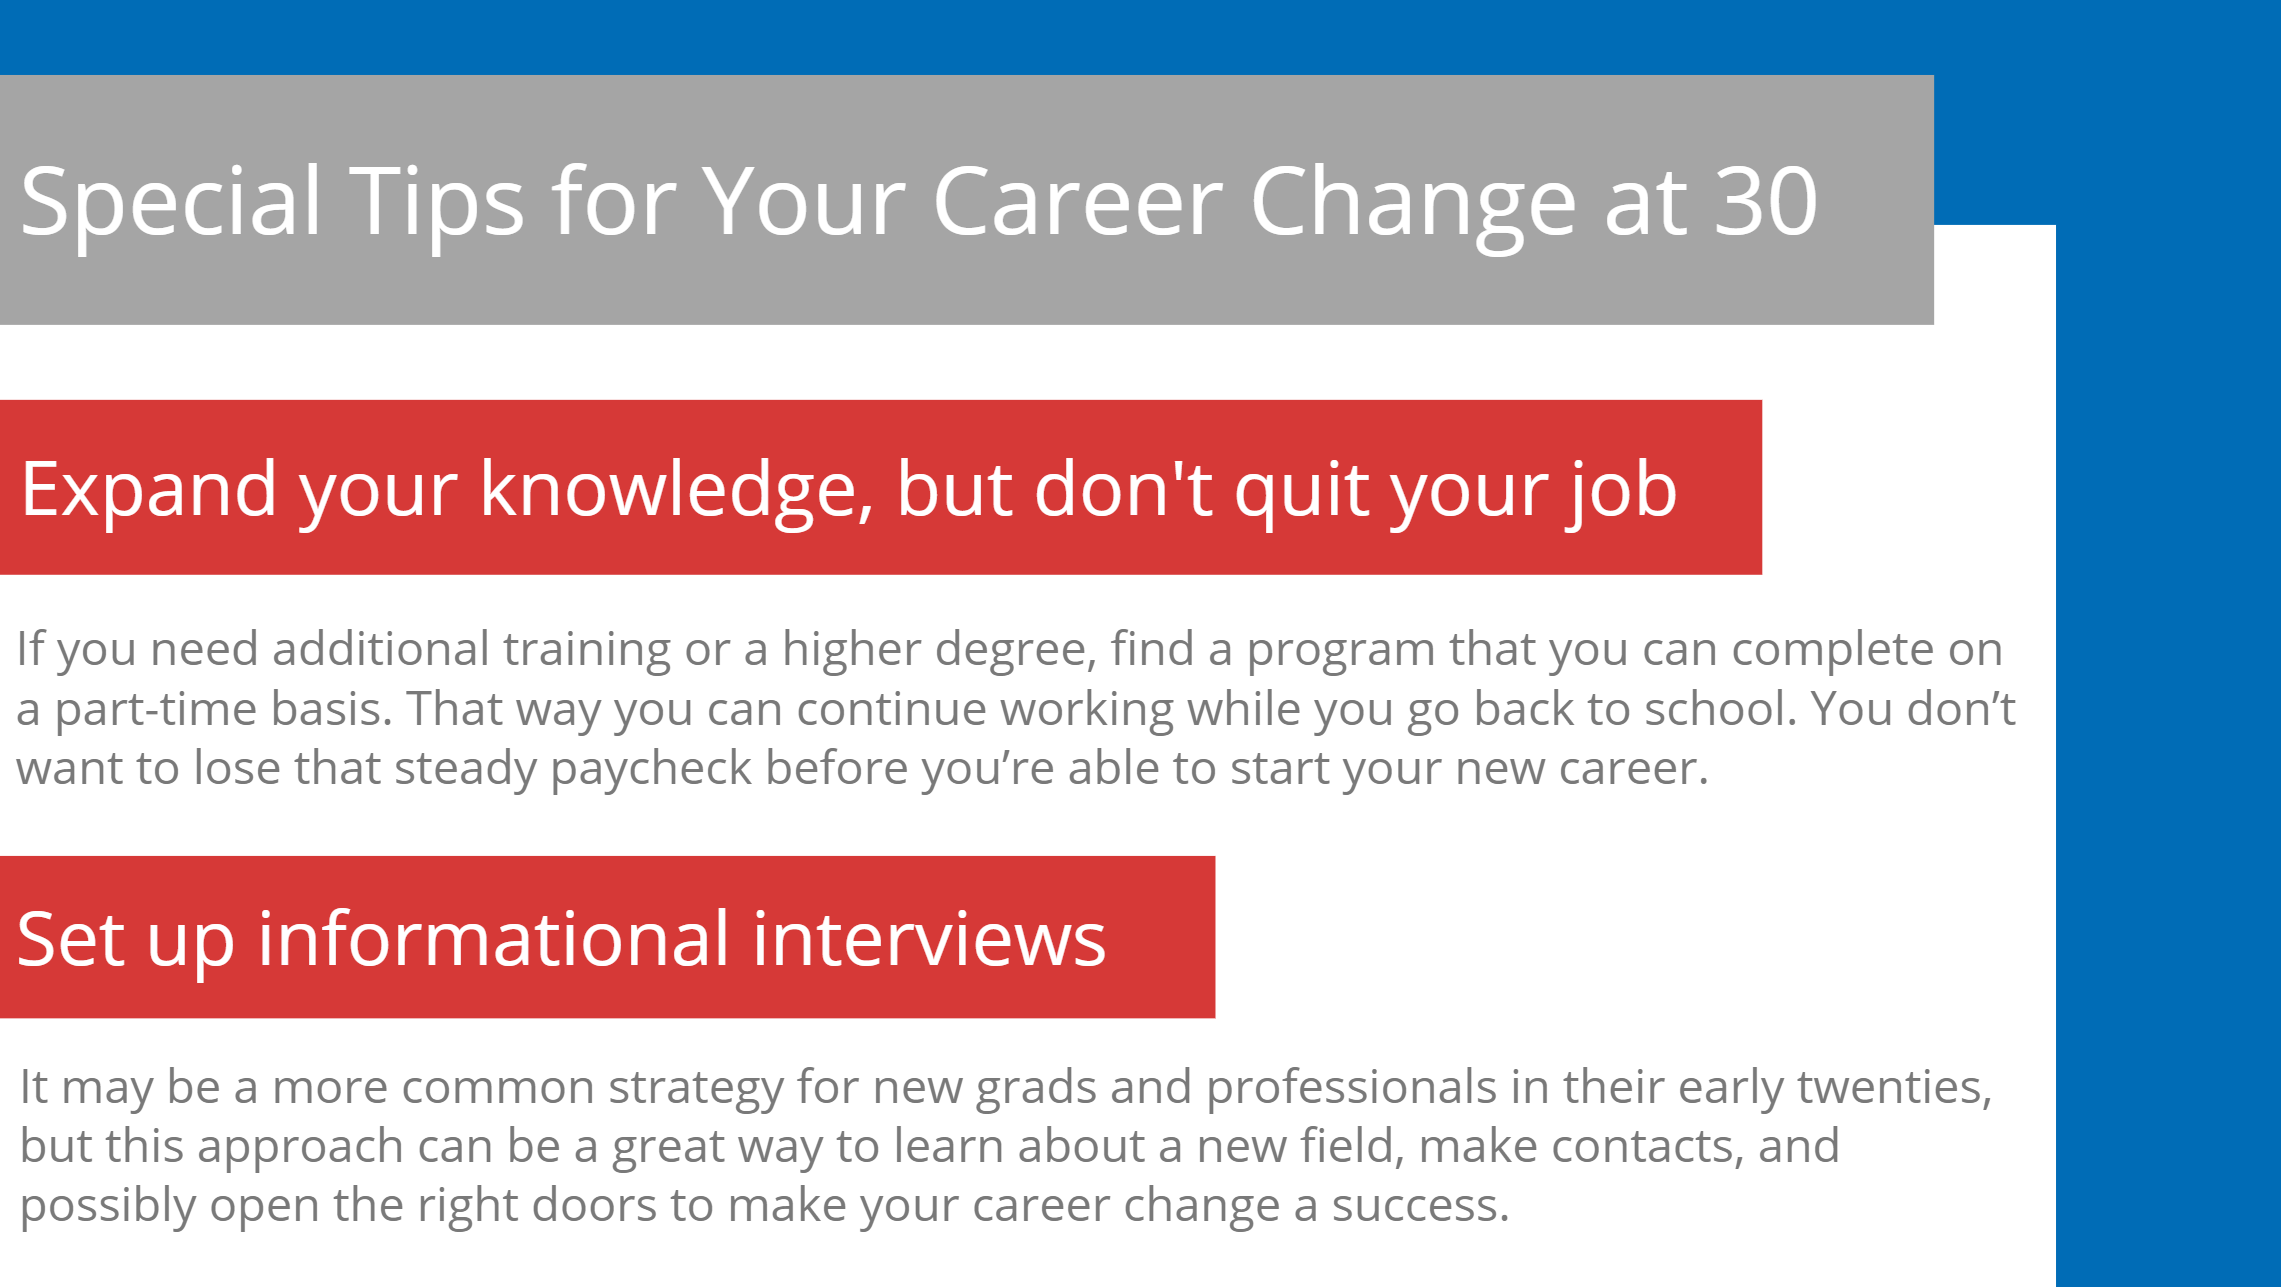 Special tips for your career change at 30